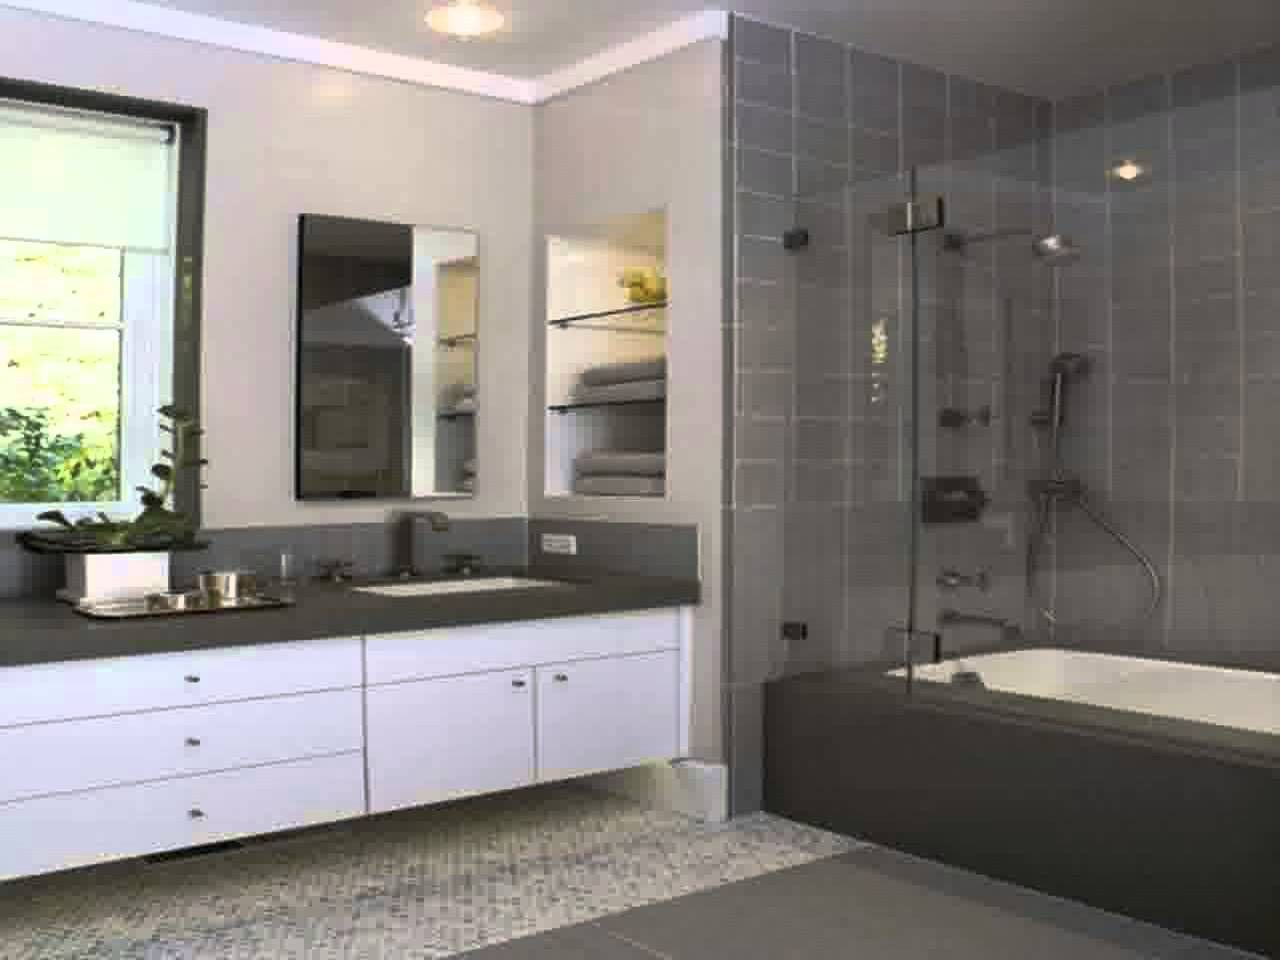 Bathroom Design Software Online Glamorous Latest Posts Under Bathroom Ideas  Bathroom Design 20172018 Design Decoration